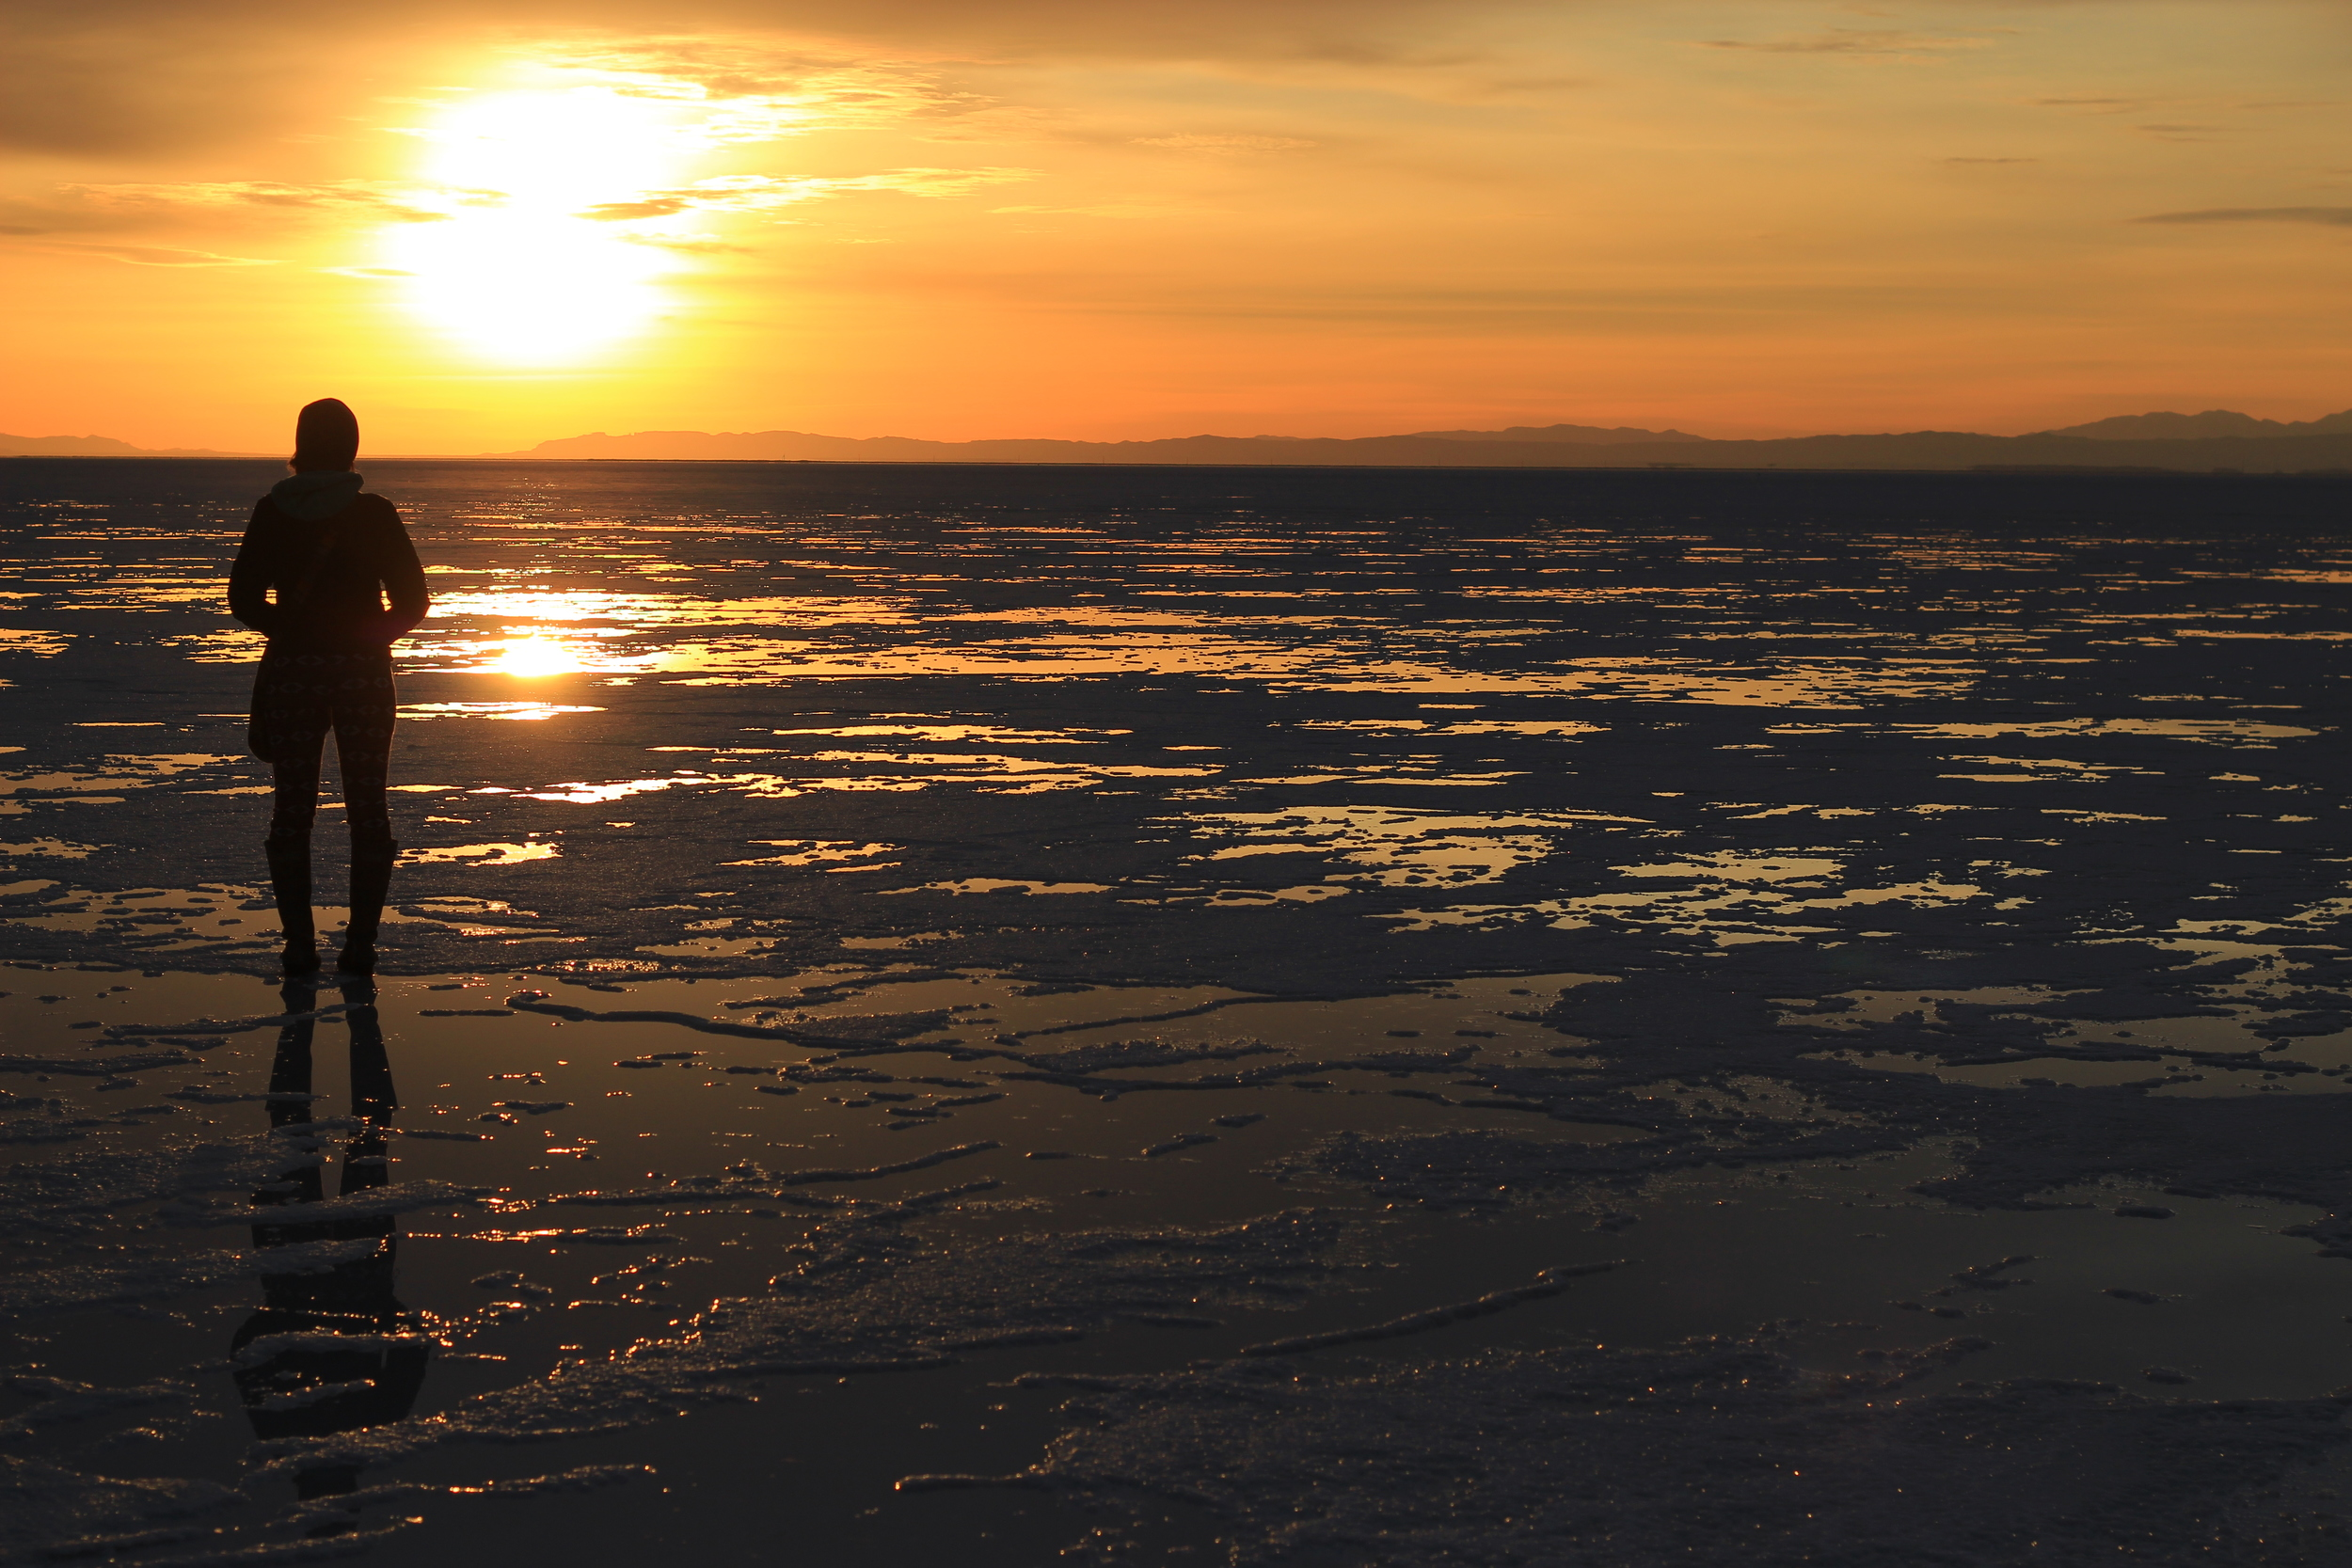 sunset salt flat utah reflection thisworldexists this world exists michelle torres